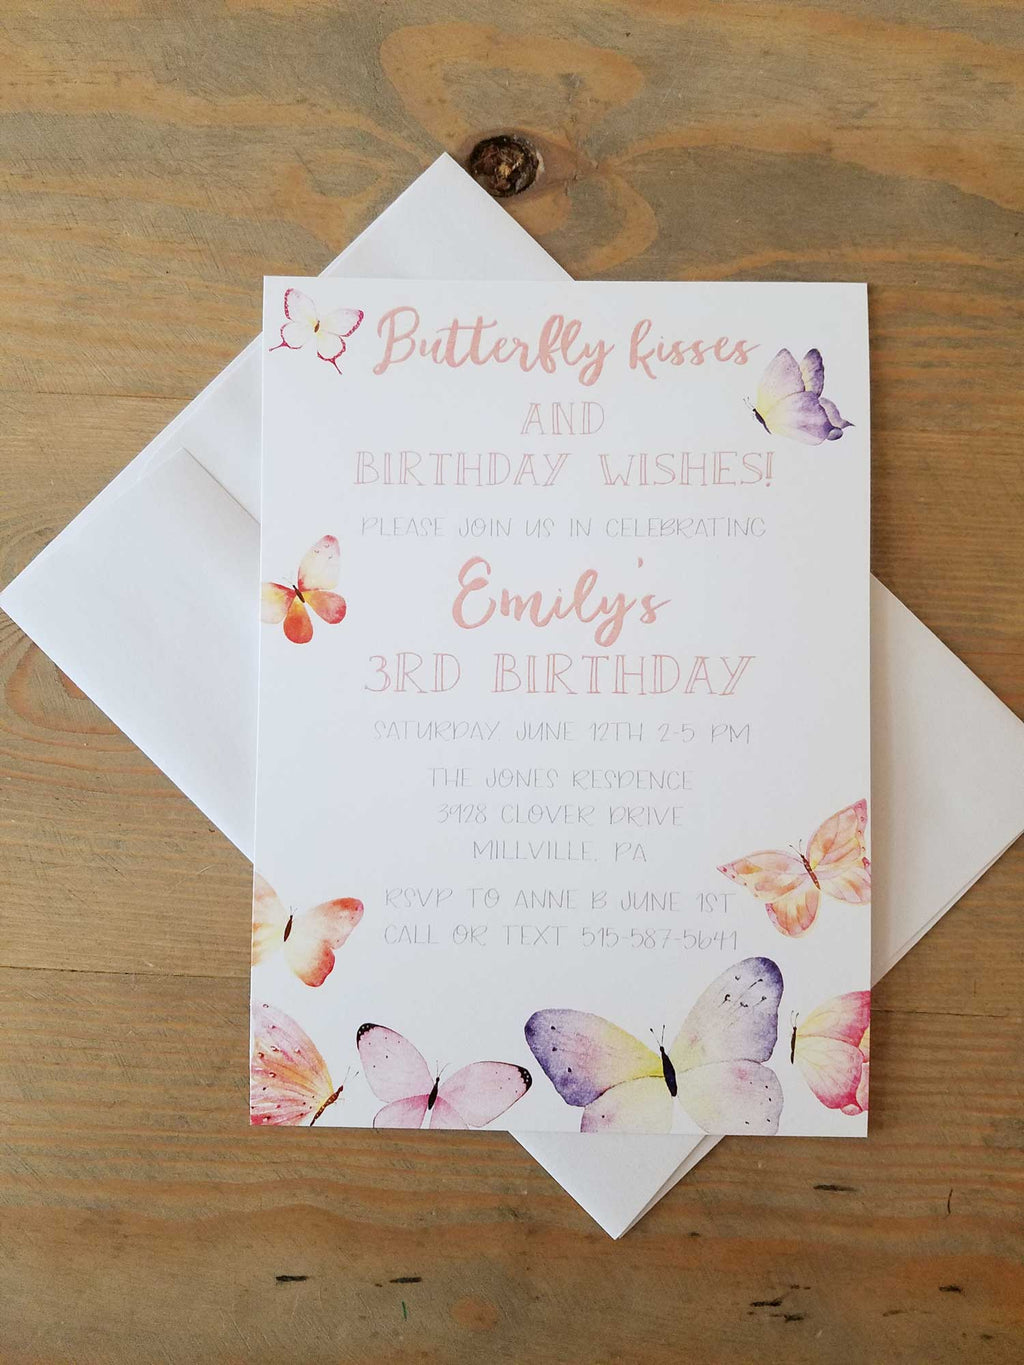 Butterfly Kisses Birthday Party Invitation